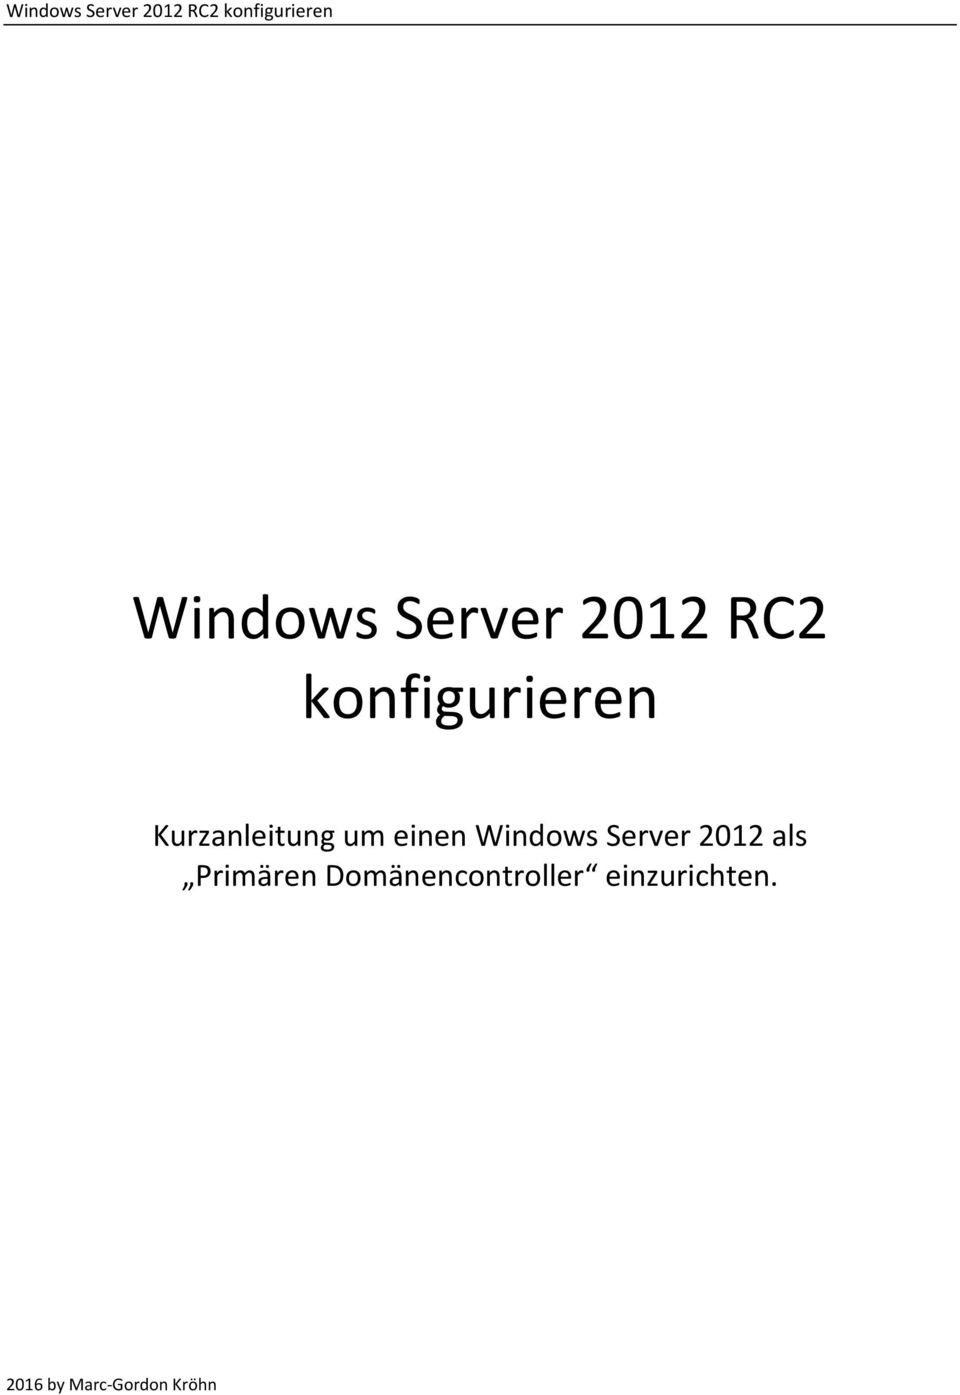 einen Windows Server 2012 als